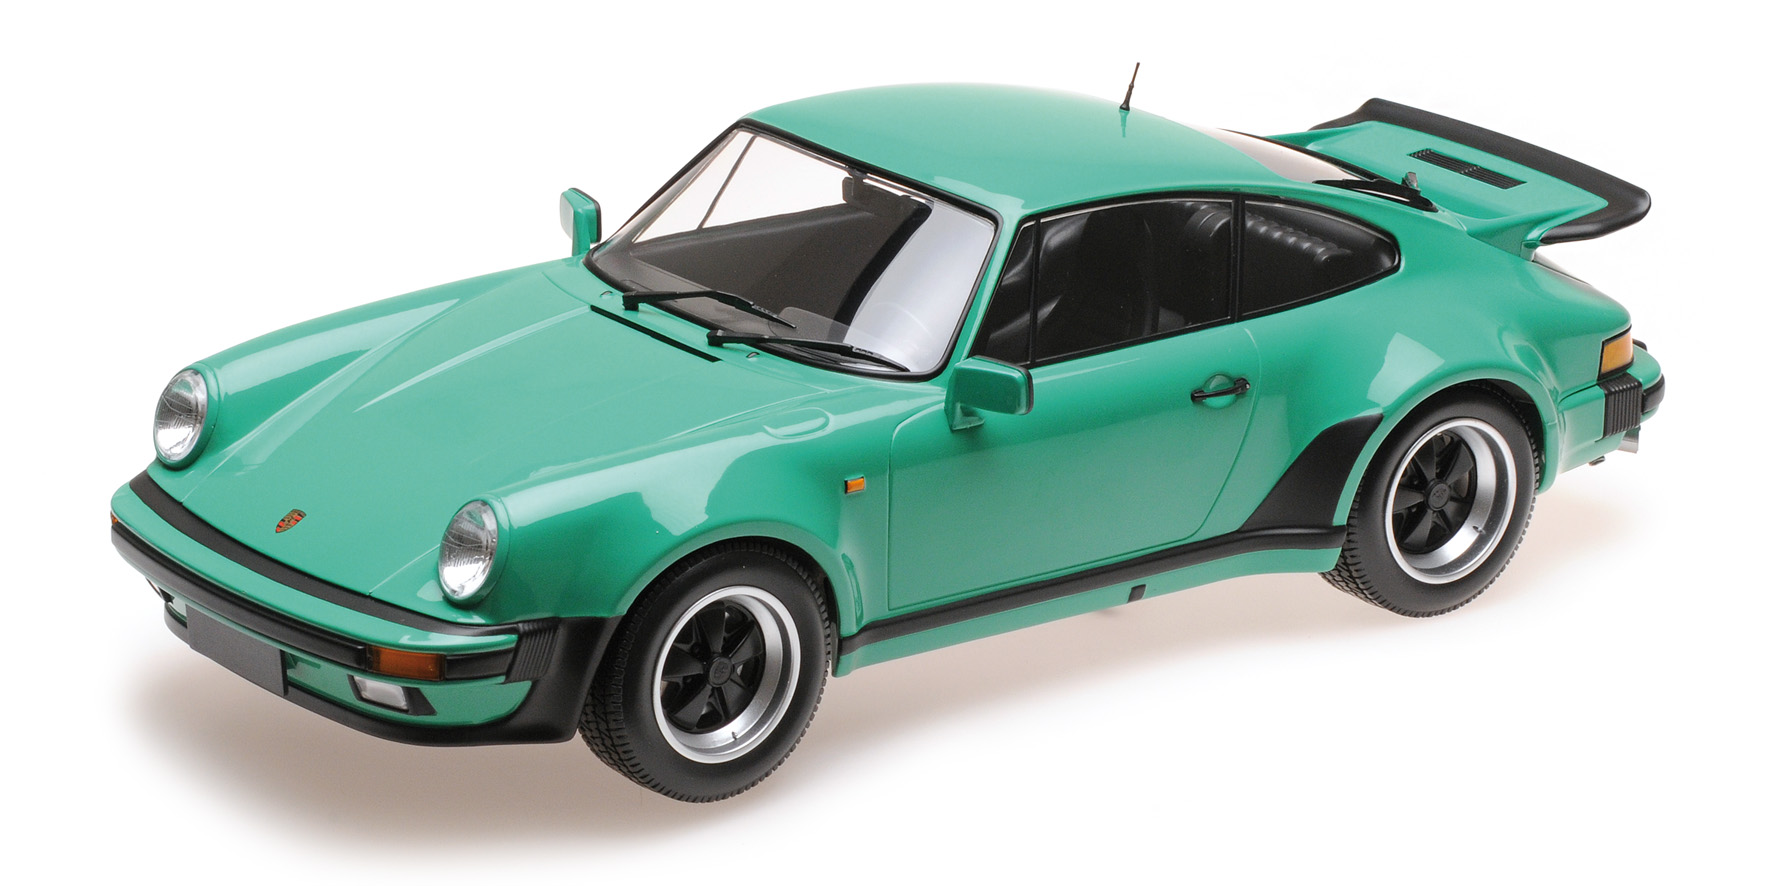 Porsche 911 Turbo 1977 Groen